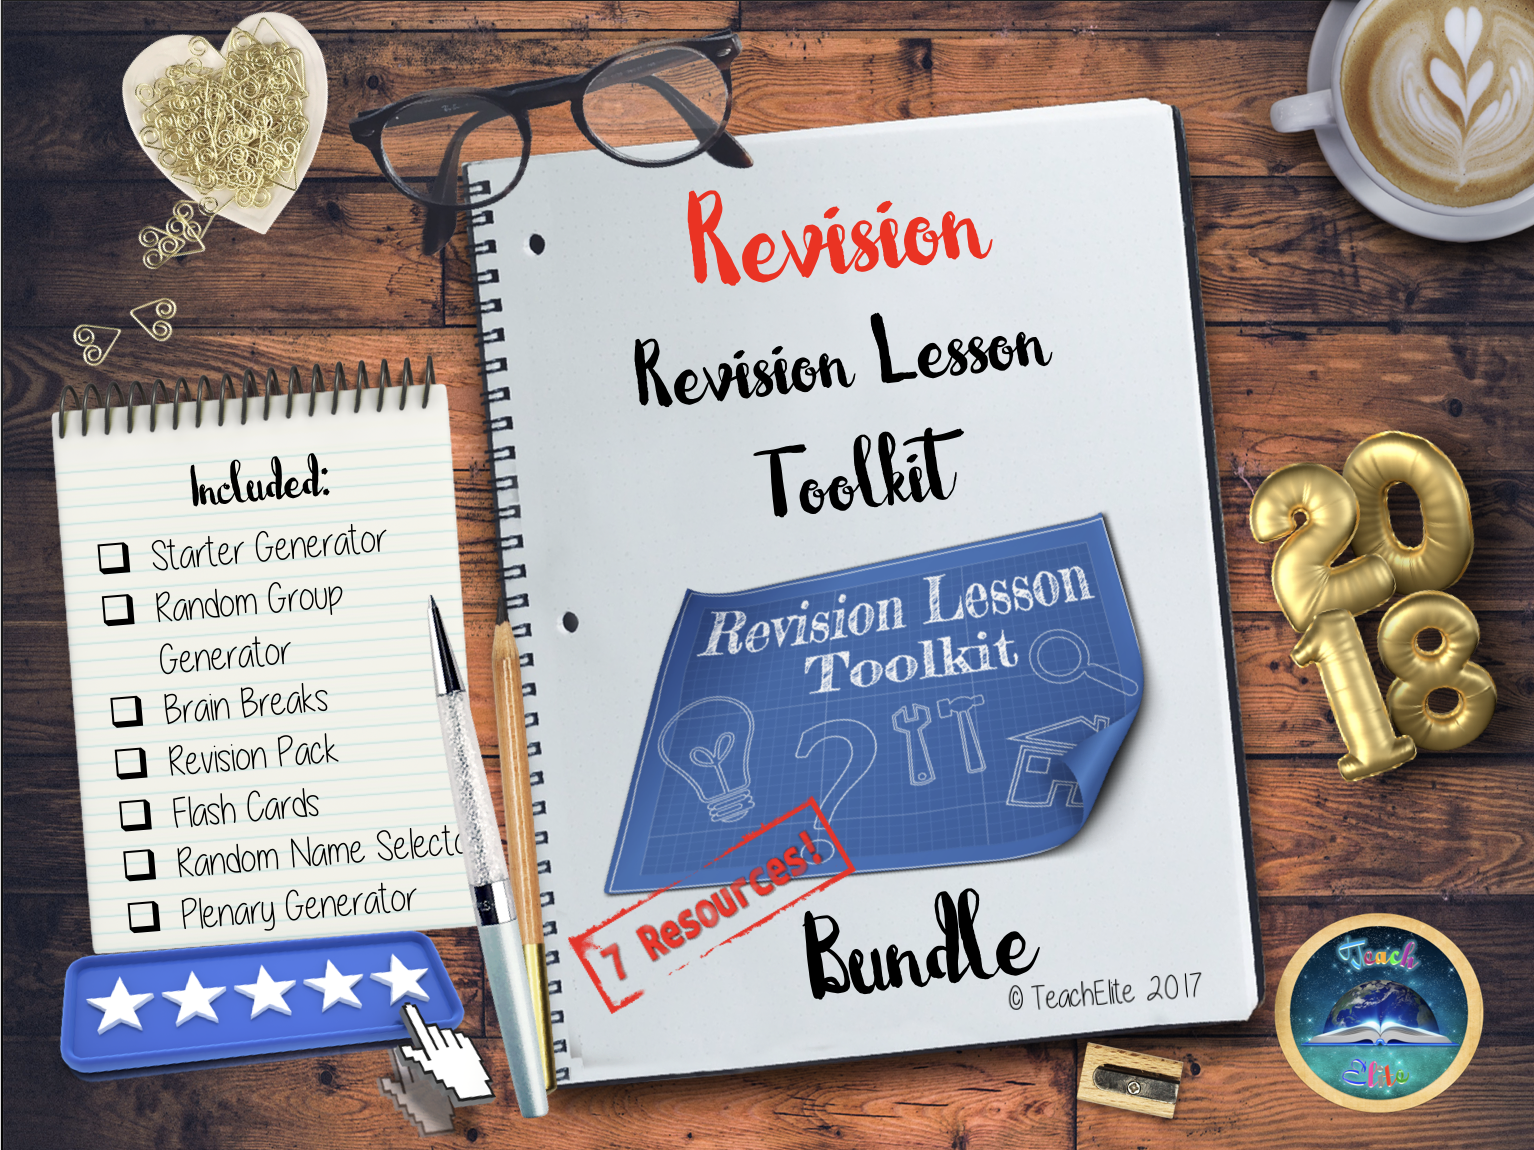 Revision: Revision Lesson Toolkit